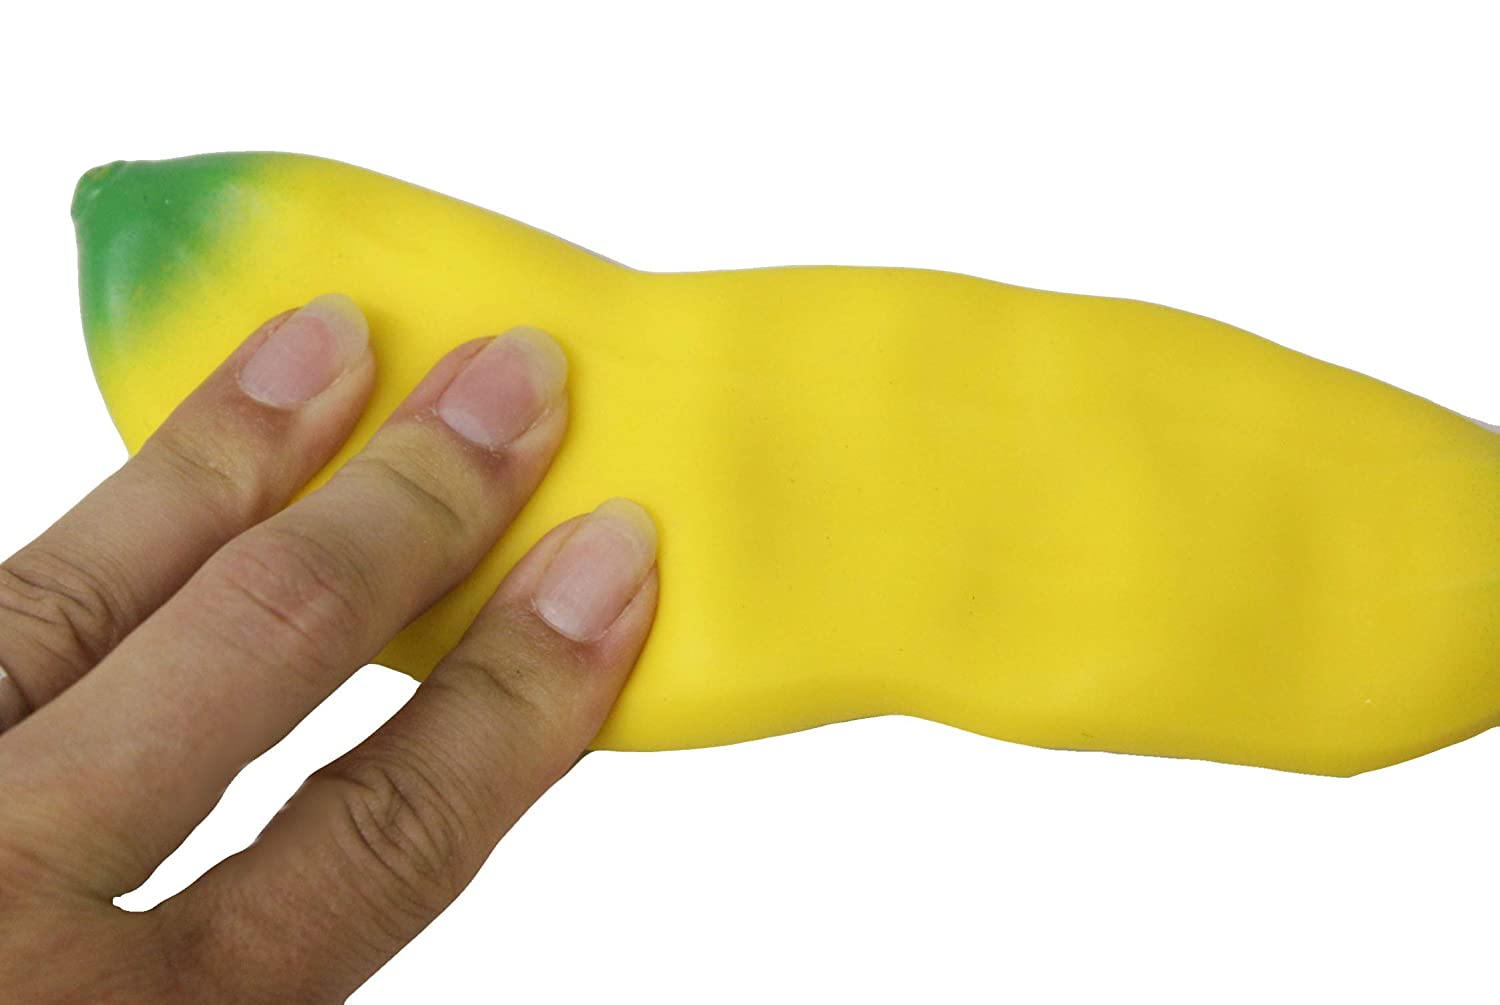 Squeeze Fidget Toy ADHD Special Needs Stress Squishy Banana Moldable Sensory